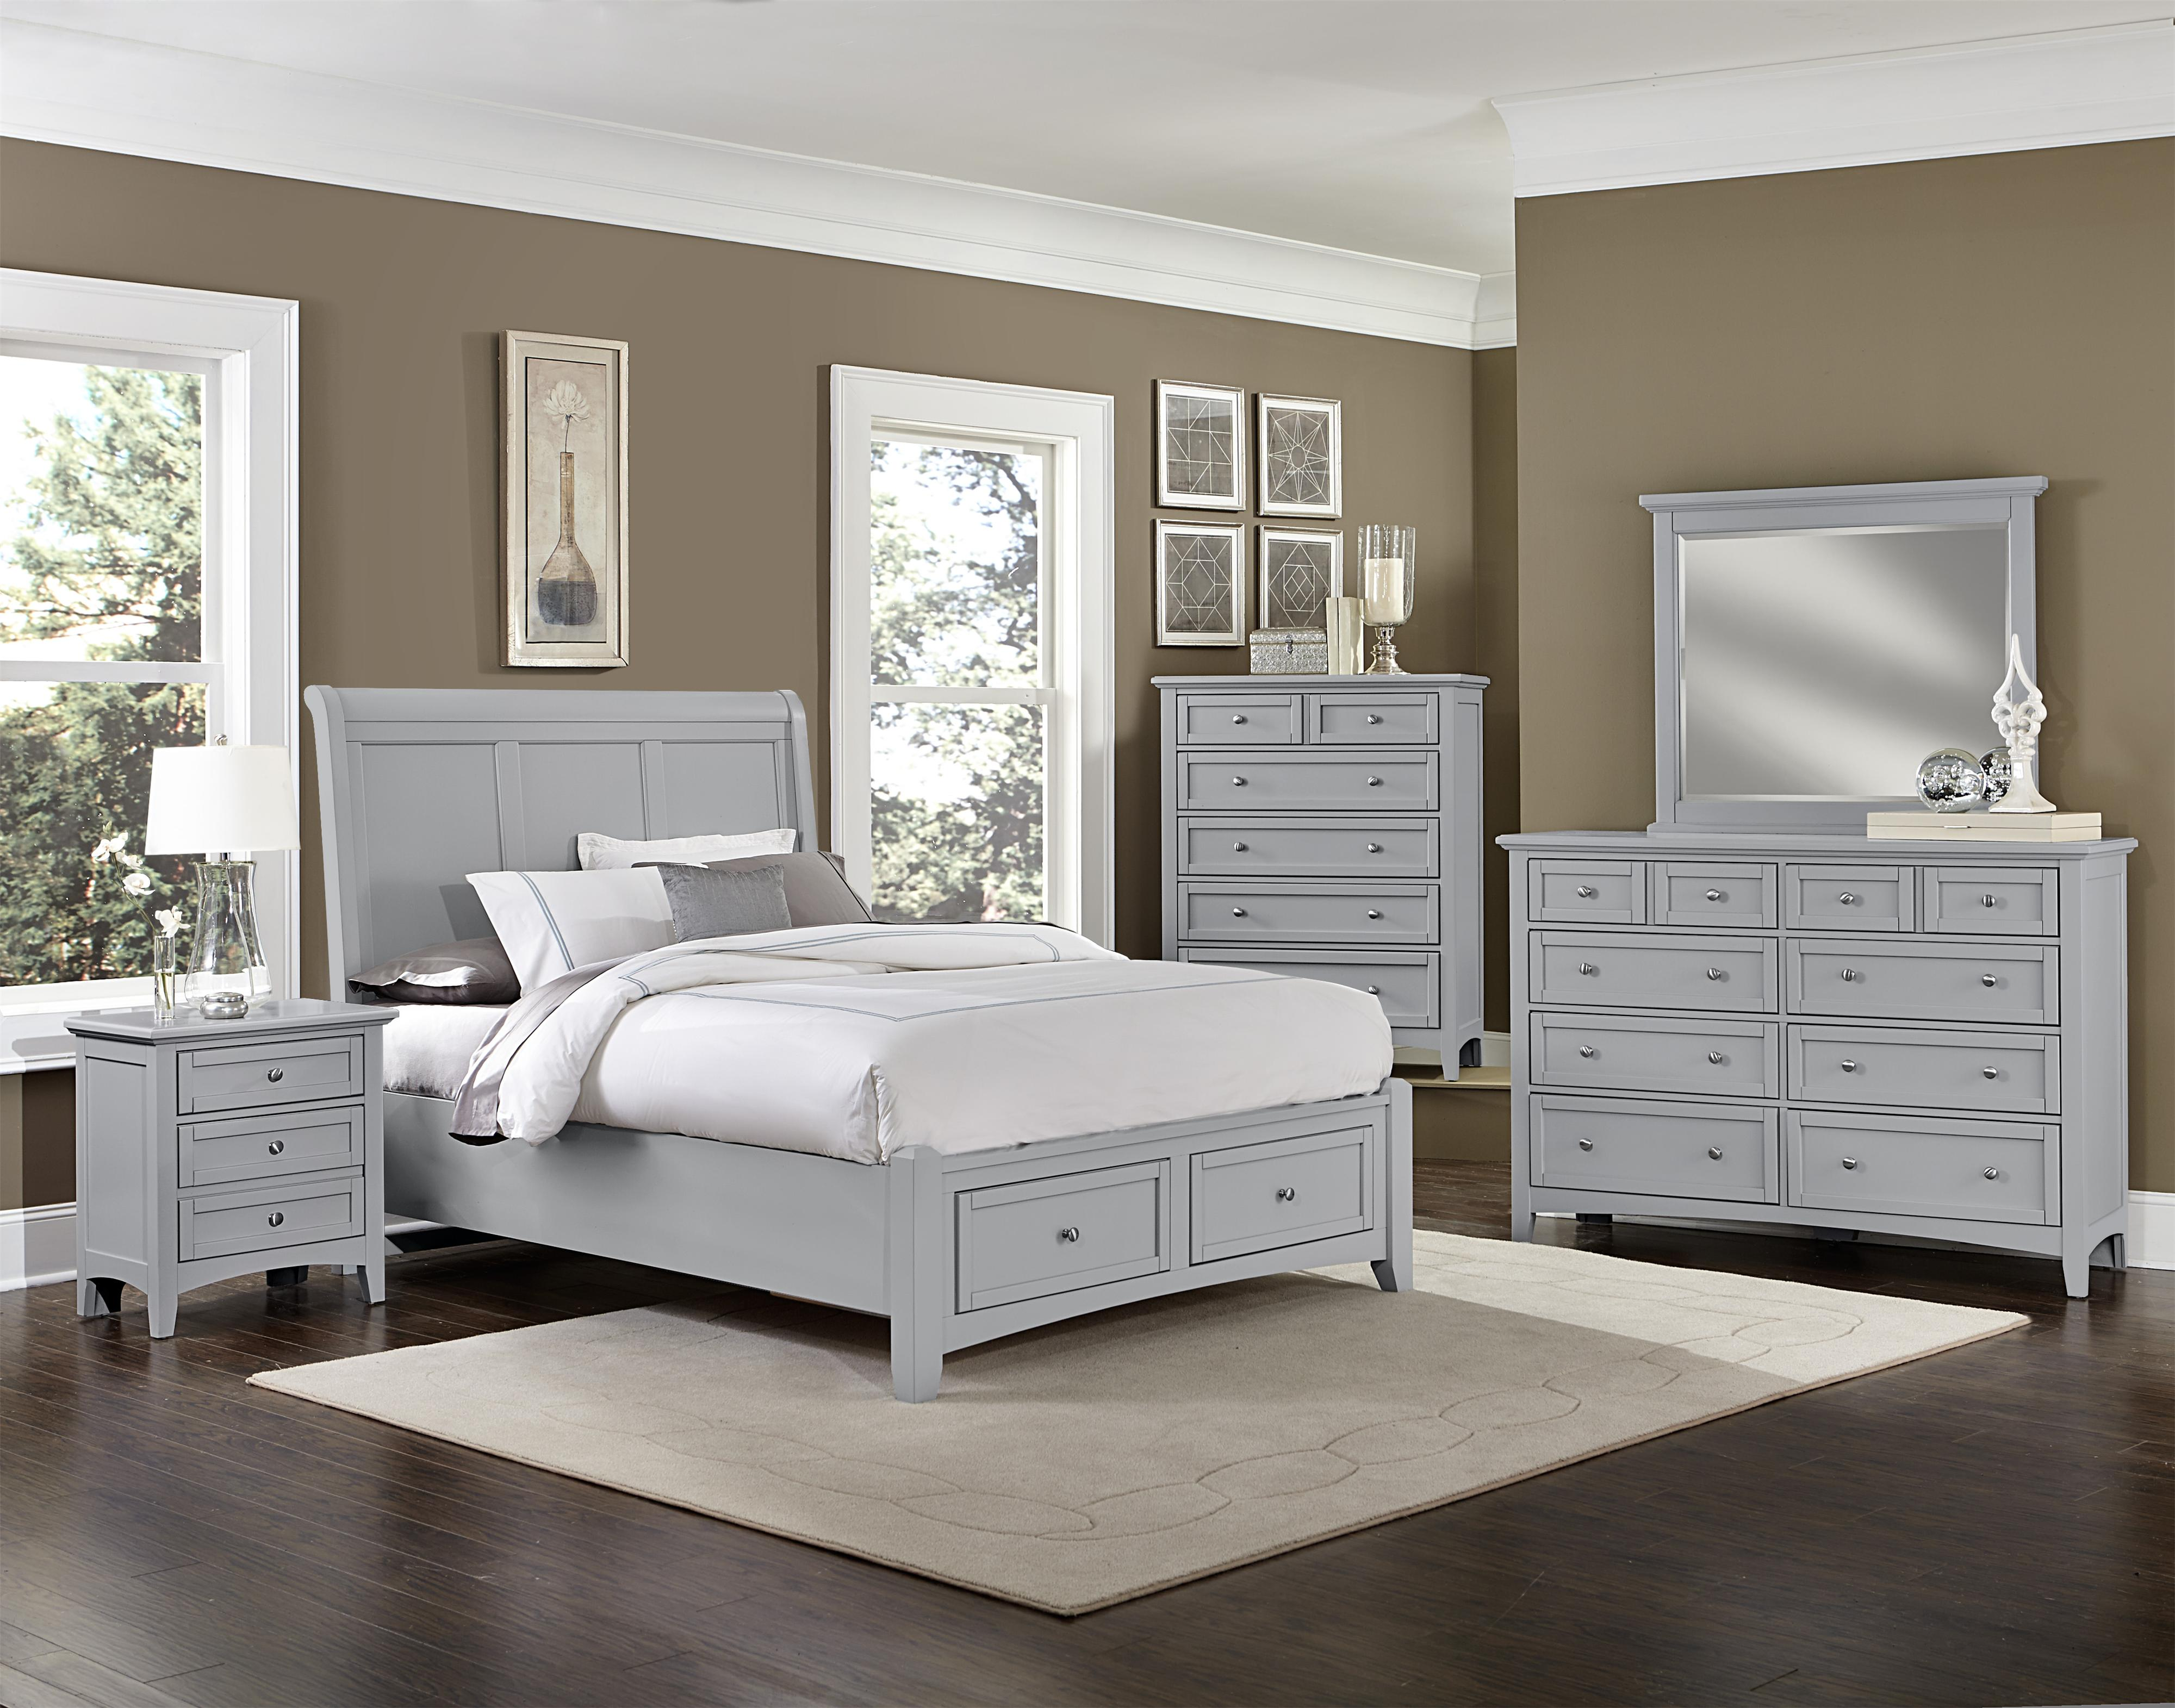 Bonanza Full Bedroom Group by Vaughan Bassett at EFO Furniture Outlet